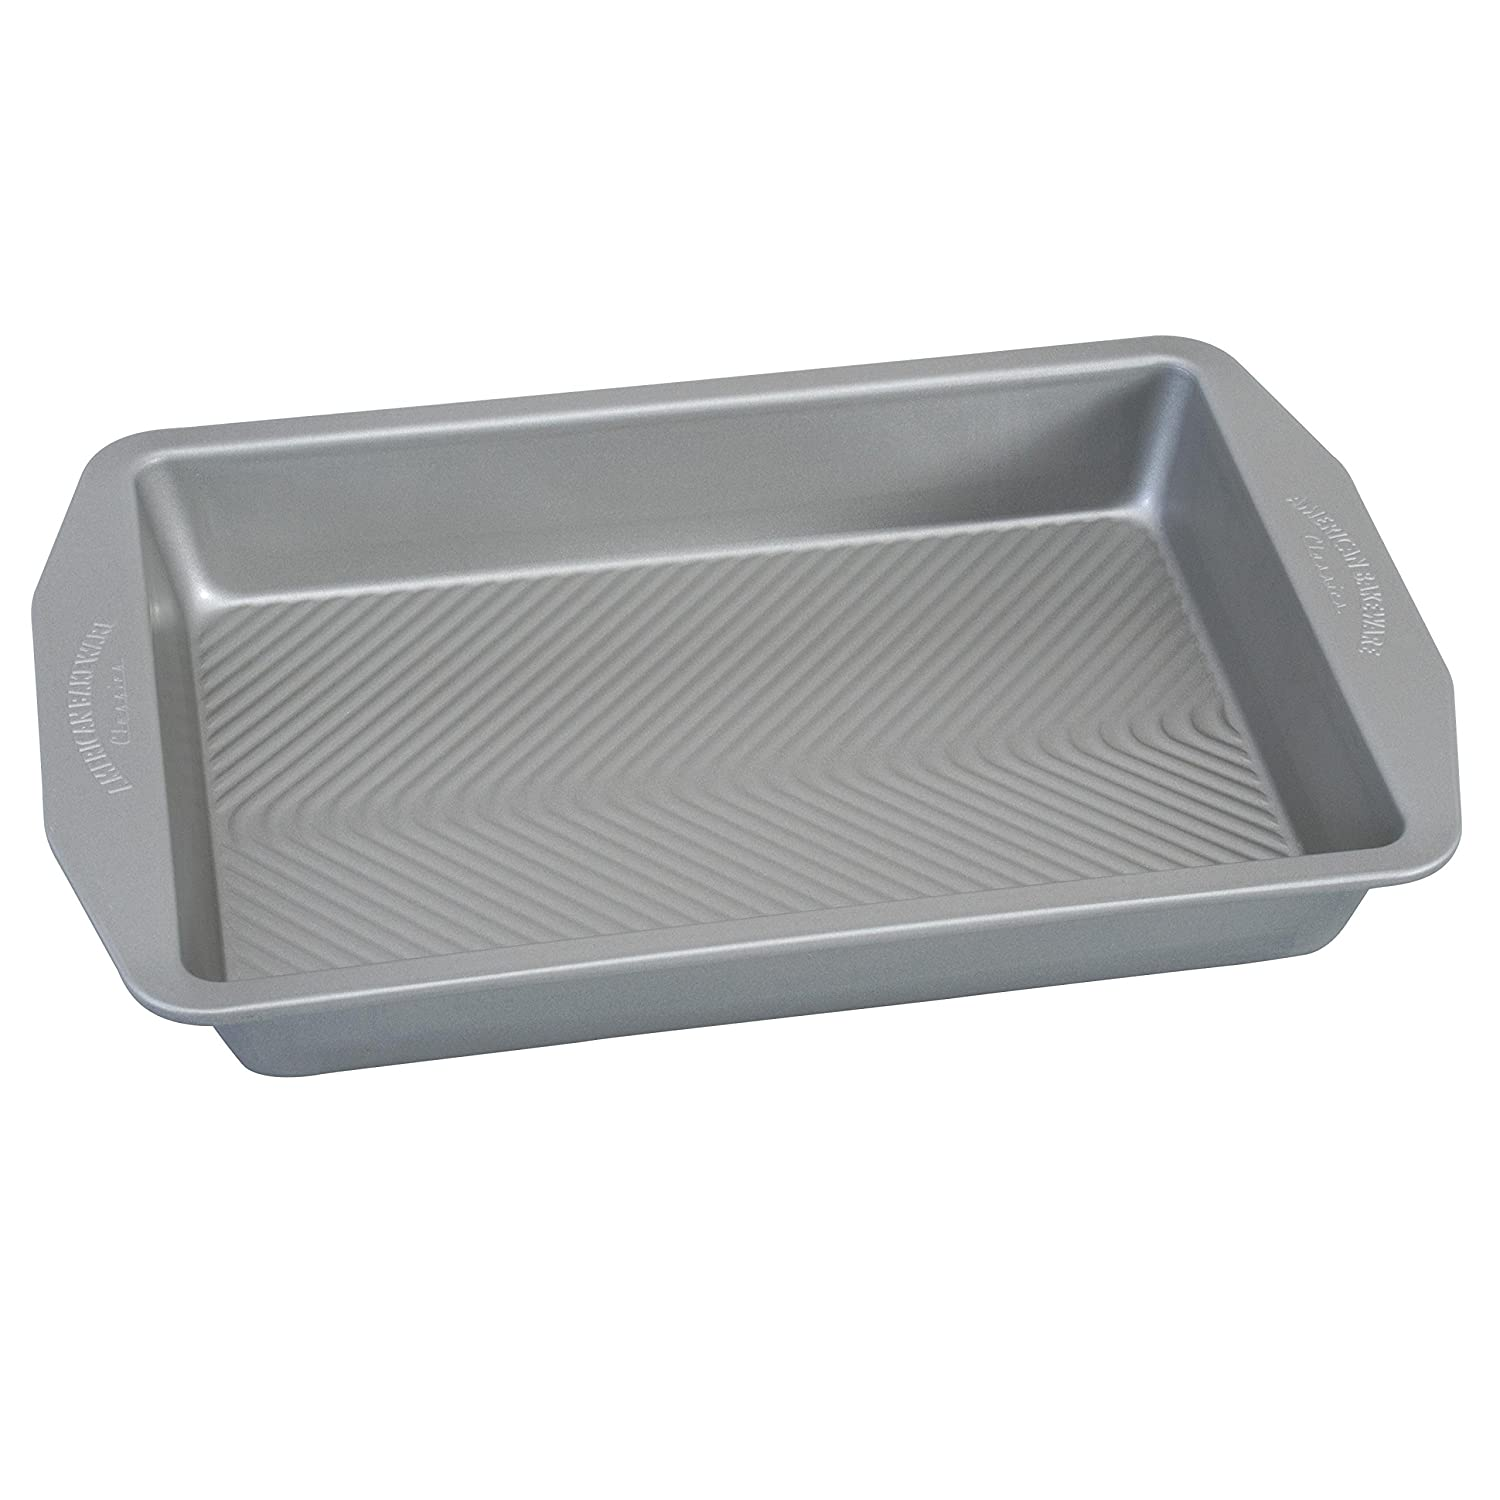 USA Pan 1140LF-2-ABC American Bakeware Classics 1 Pound Loaf Baking Pan, Aluminized Steel